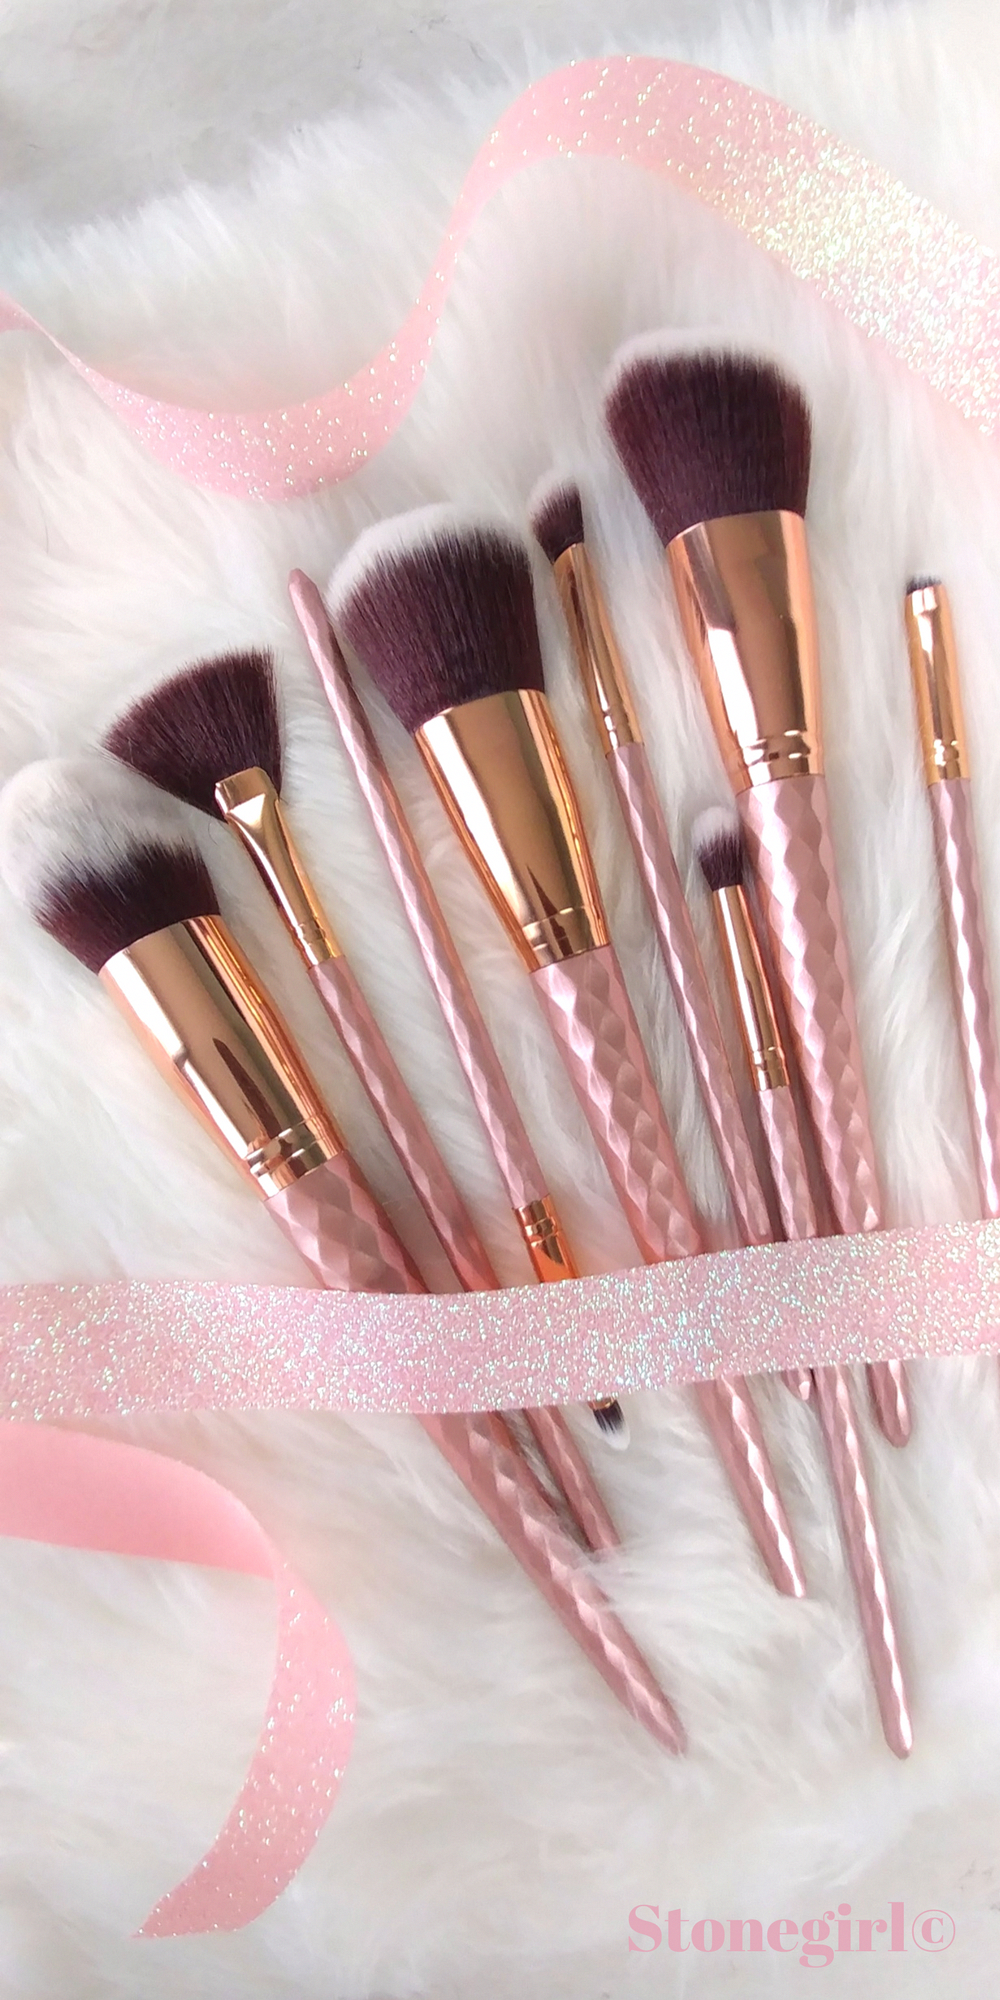 a9ccd8cd0c8 Your makeup routine is going to get a whole lot more magical with this  gorgeous 8 piece unicorn makeup brush set. With bold blush and rose gold  accents, ...